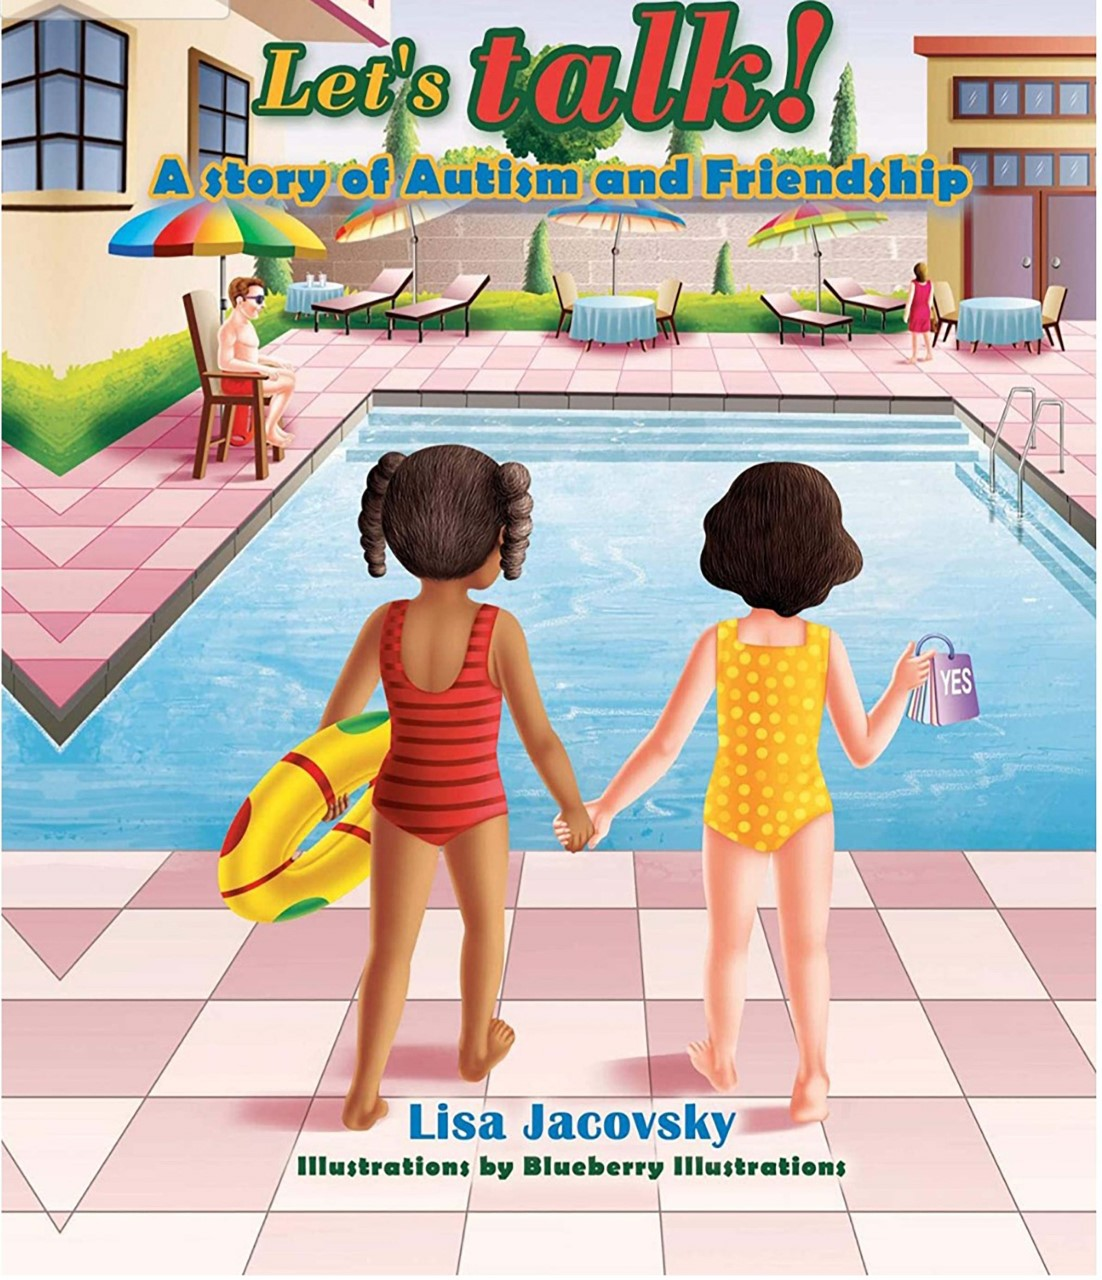 Book cover of Let's Talk! A Story of Autism and Friendship